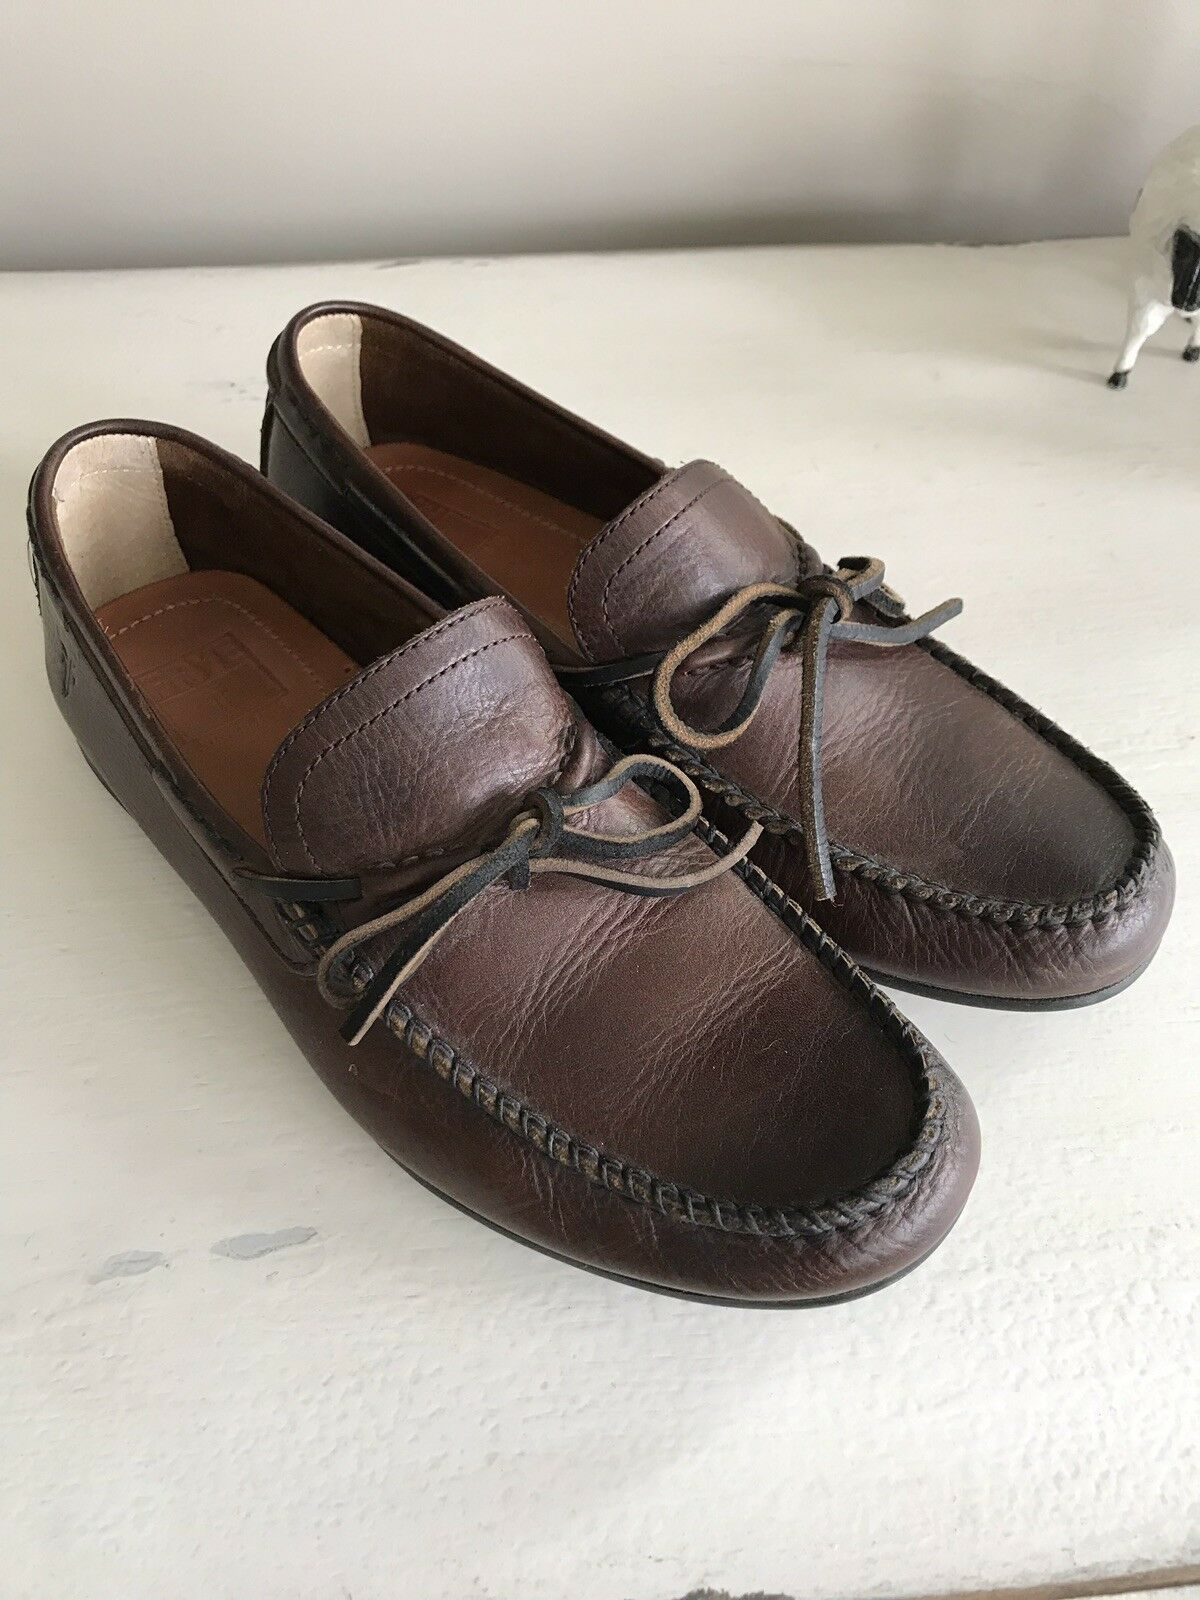 Frye Russel Tie Loafer - Men's Size 10.5- Brown